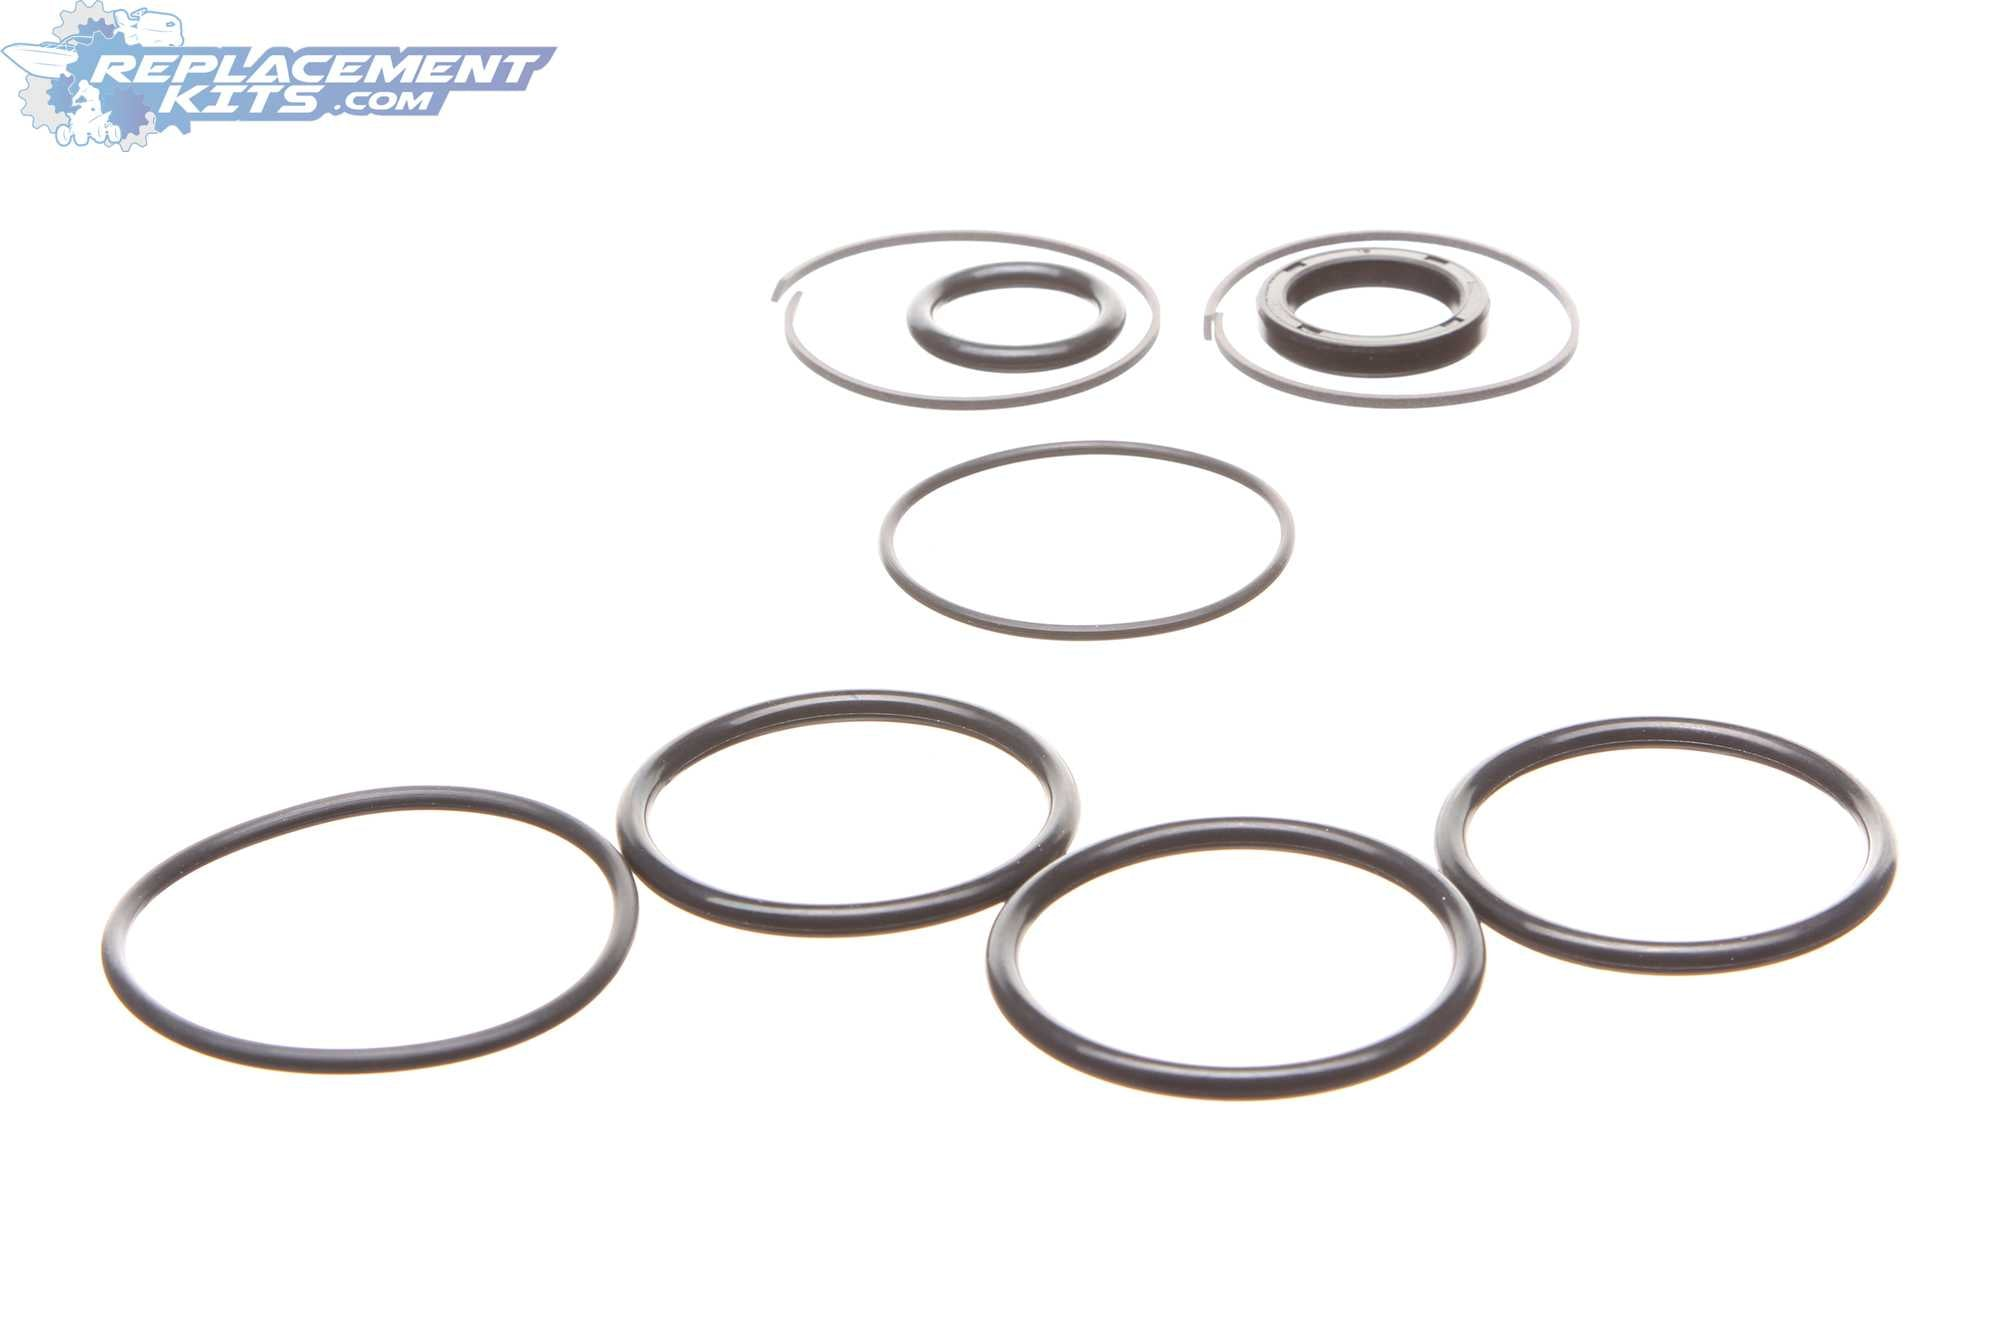 Replacement Kits OMC Cobra Stern Drive Seal Kit Replaces